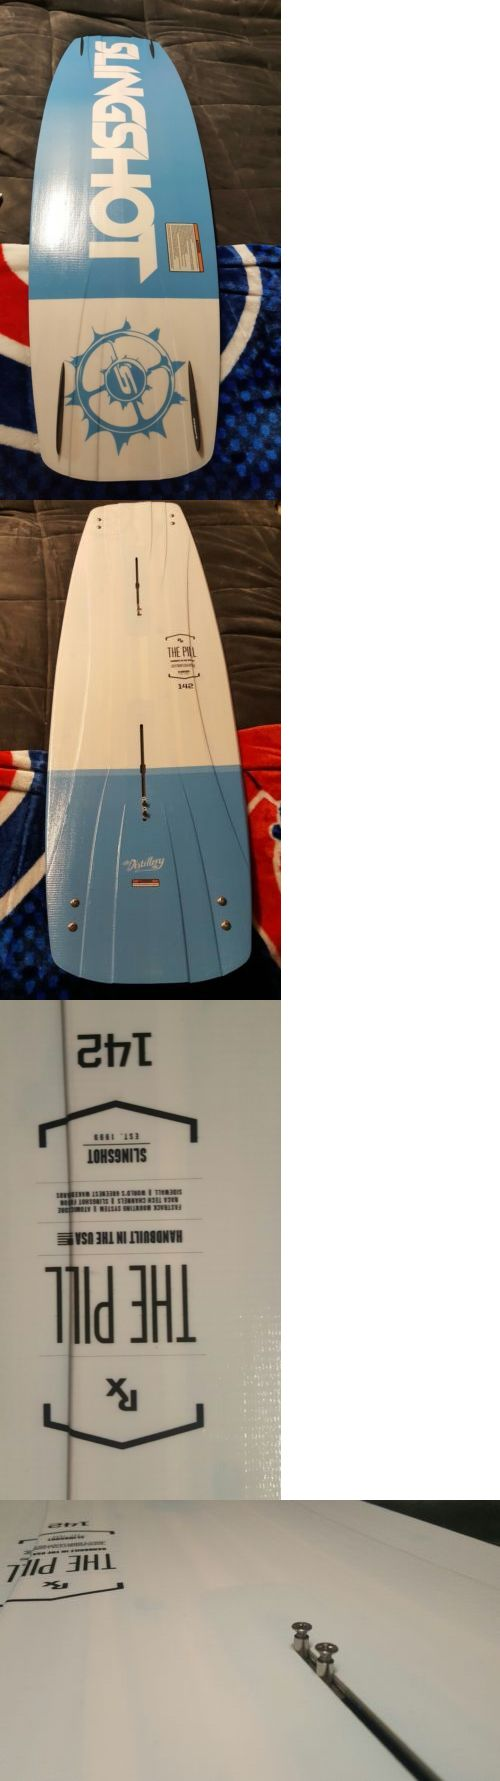 Wakeboards 47363: 2016 Slingshot Blue Pill Wakeboard Size- 142 Cm. With Hardware -> BUY IT NOW ONLY: $325 on eBay!